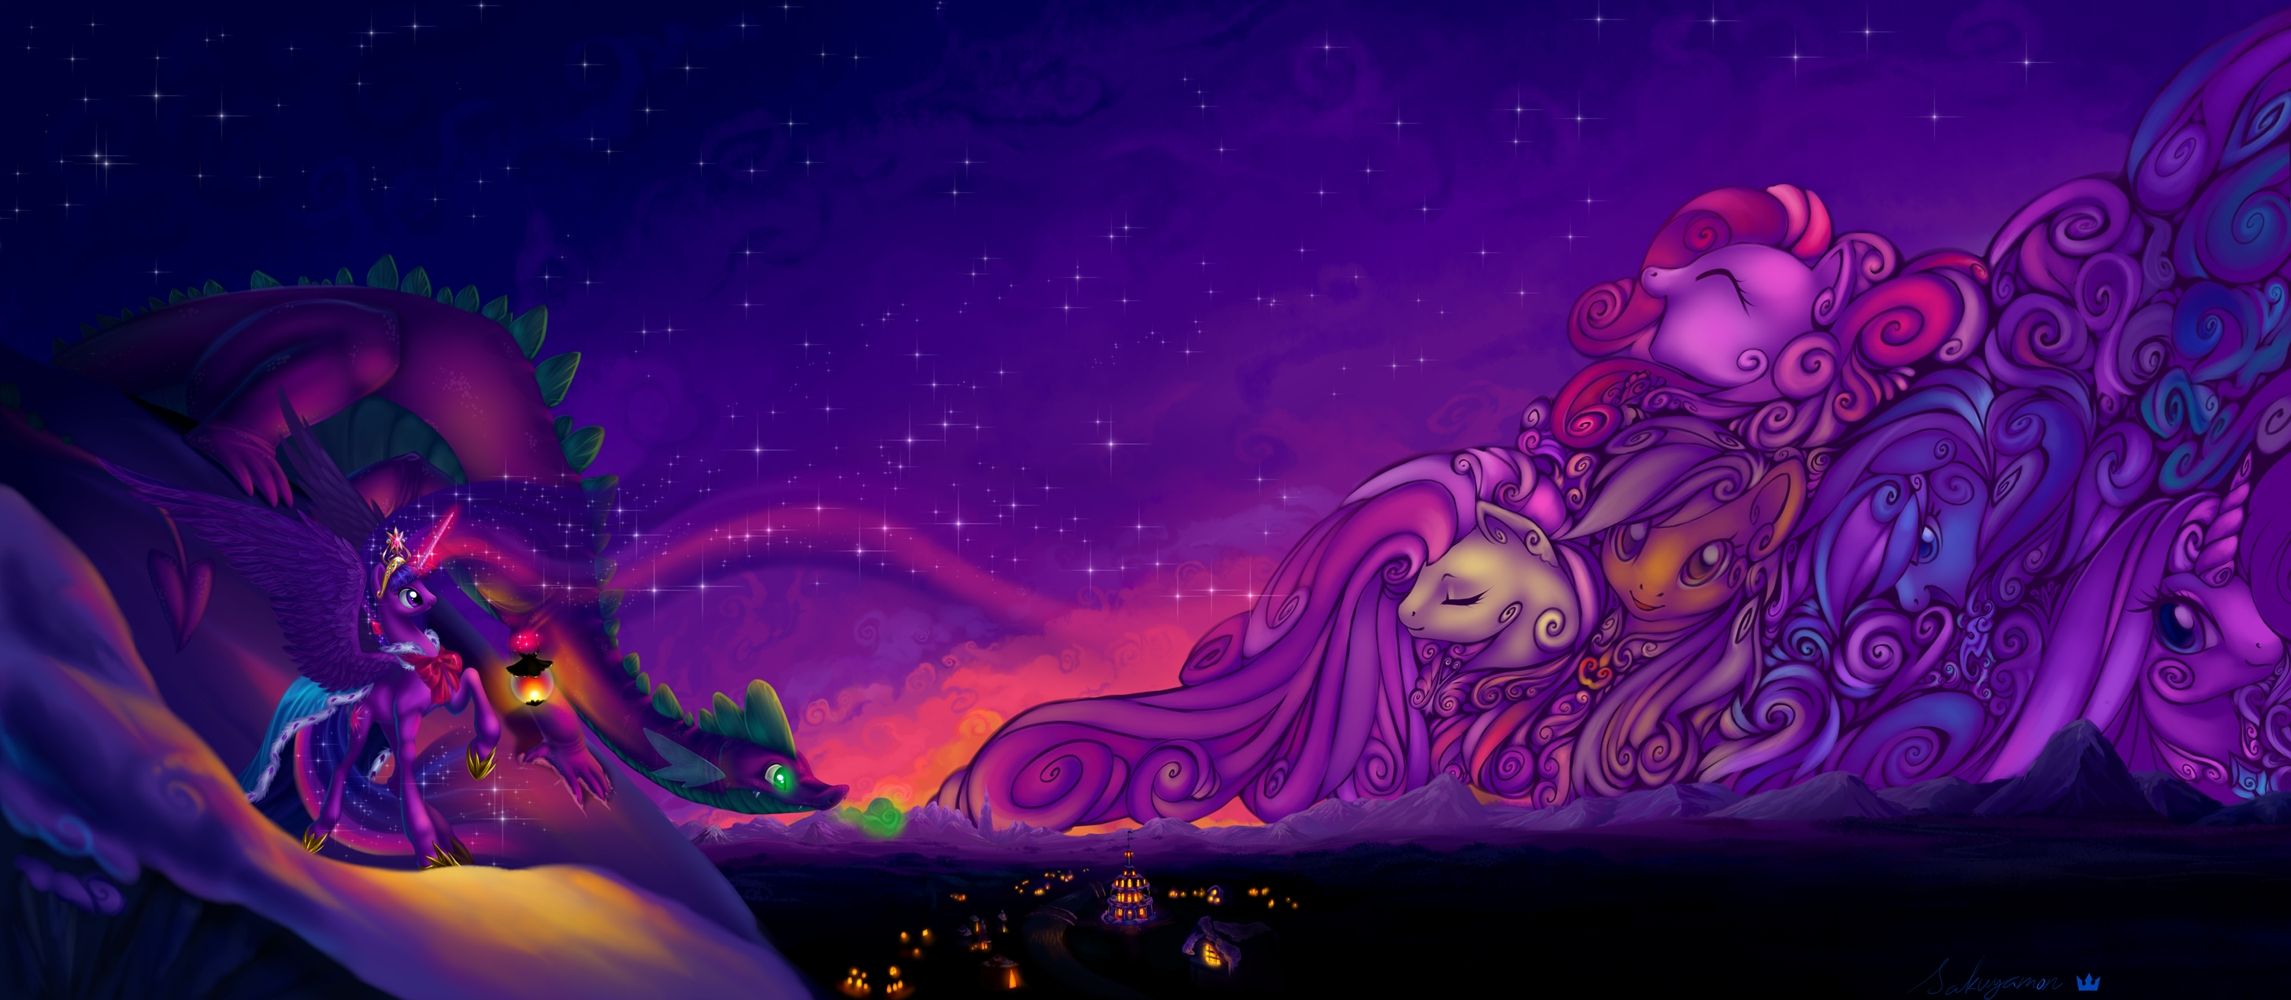 princess twilight sparkle wallpaper cool - photo #17